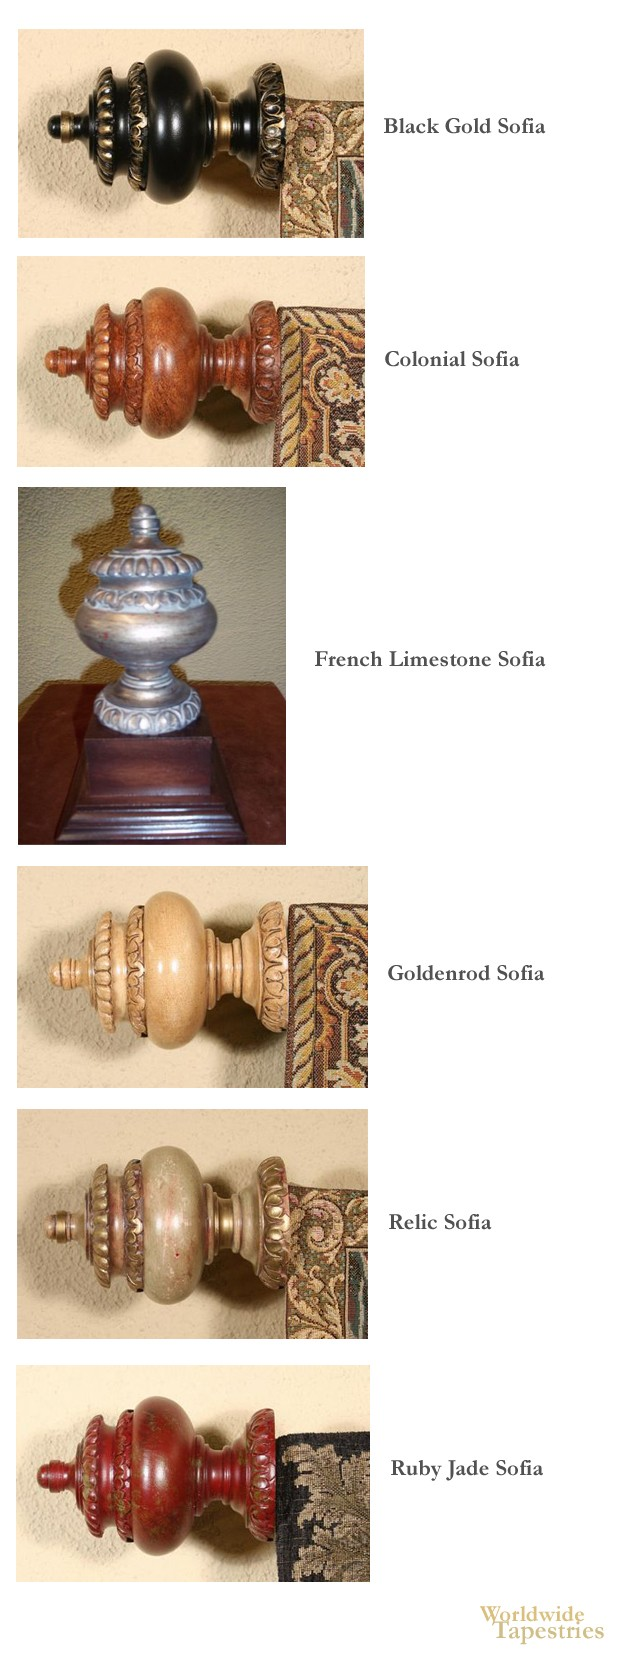 Sofia Finial Set